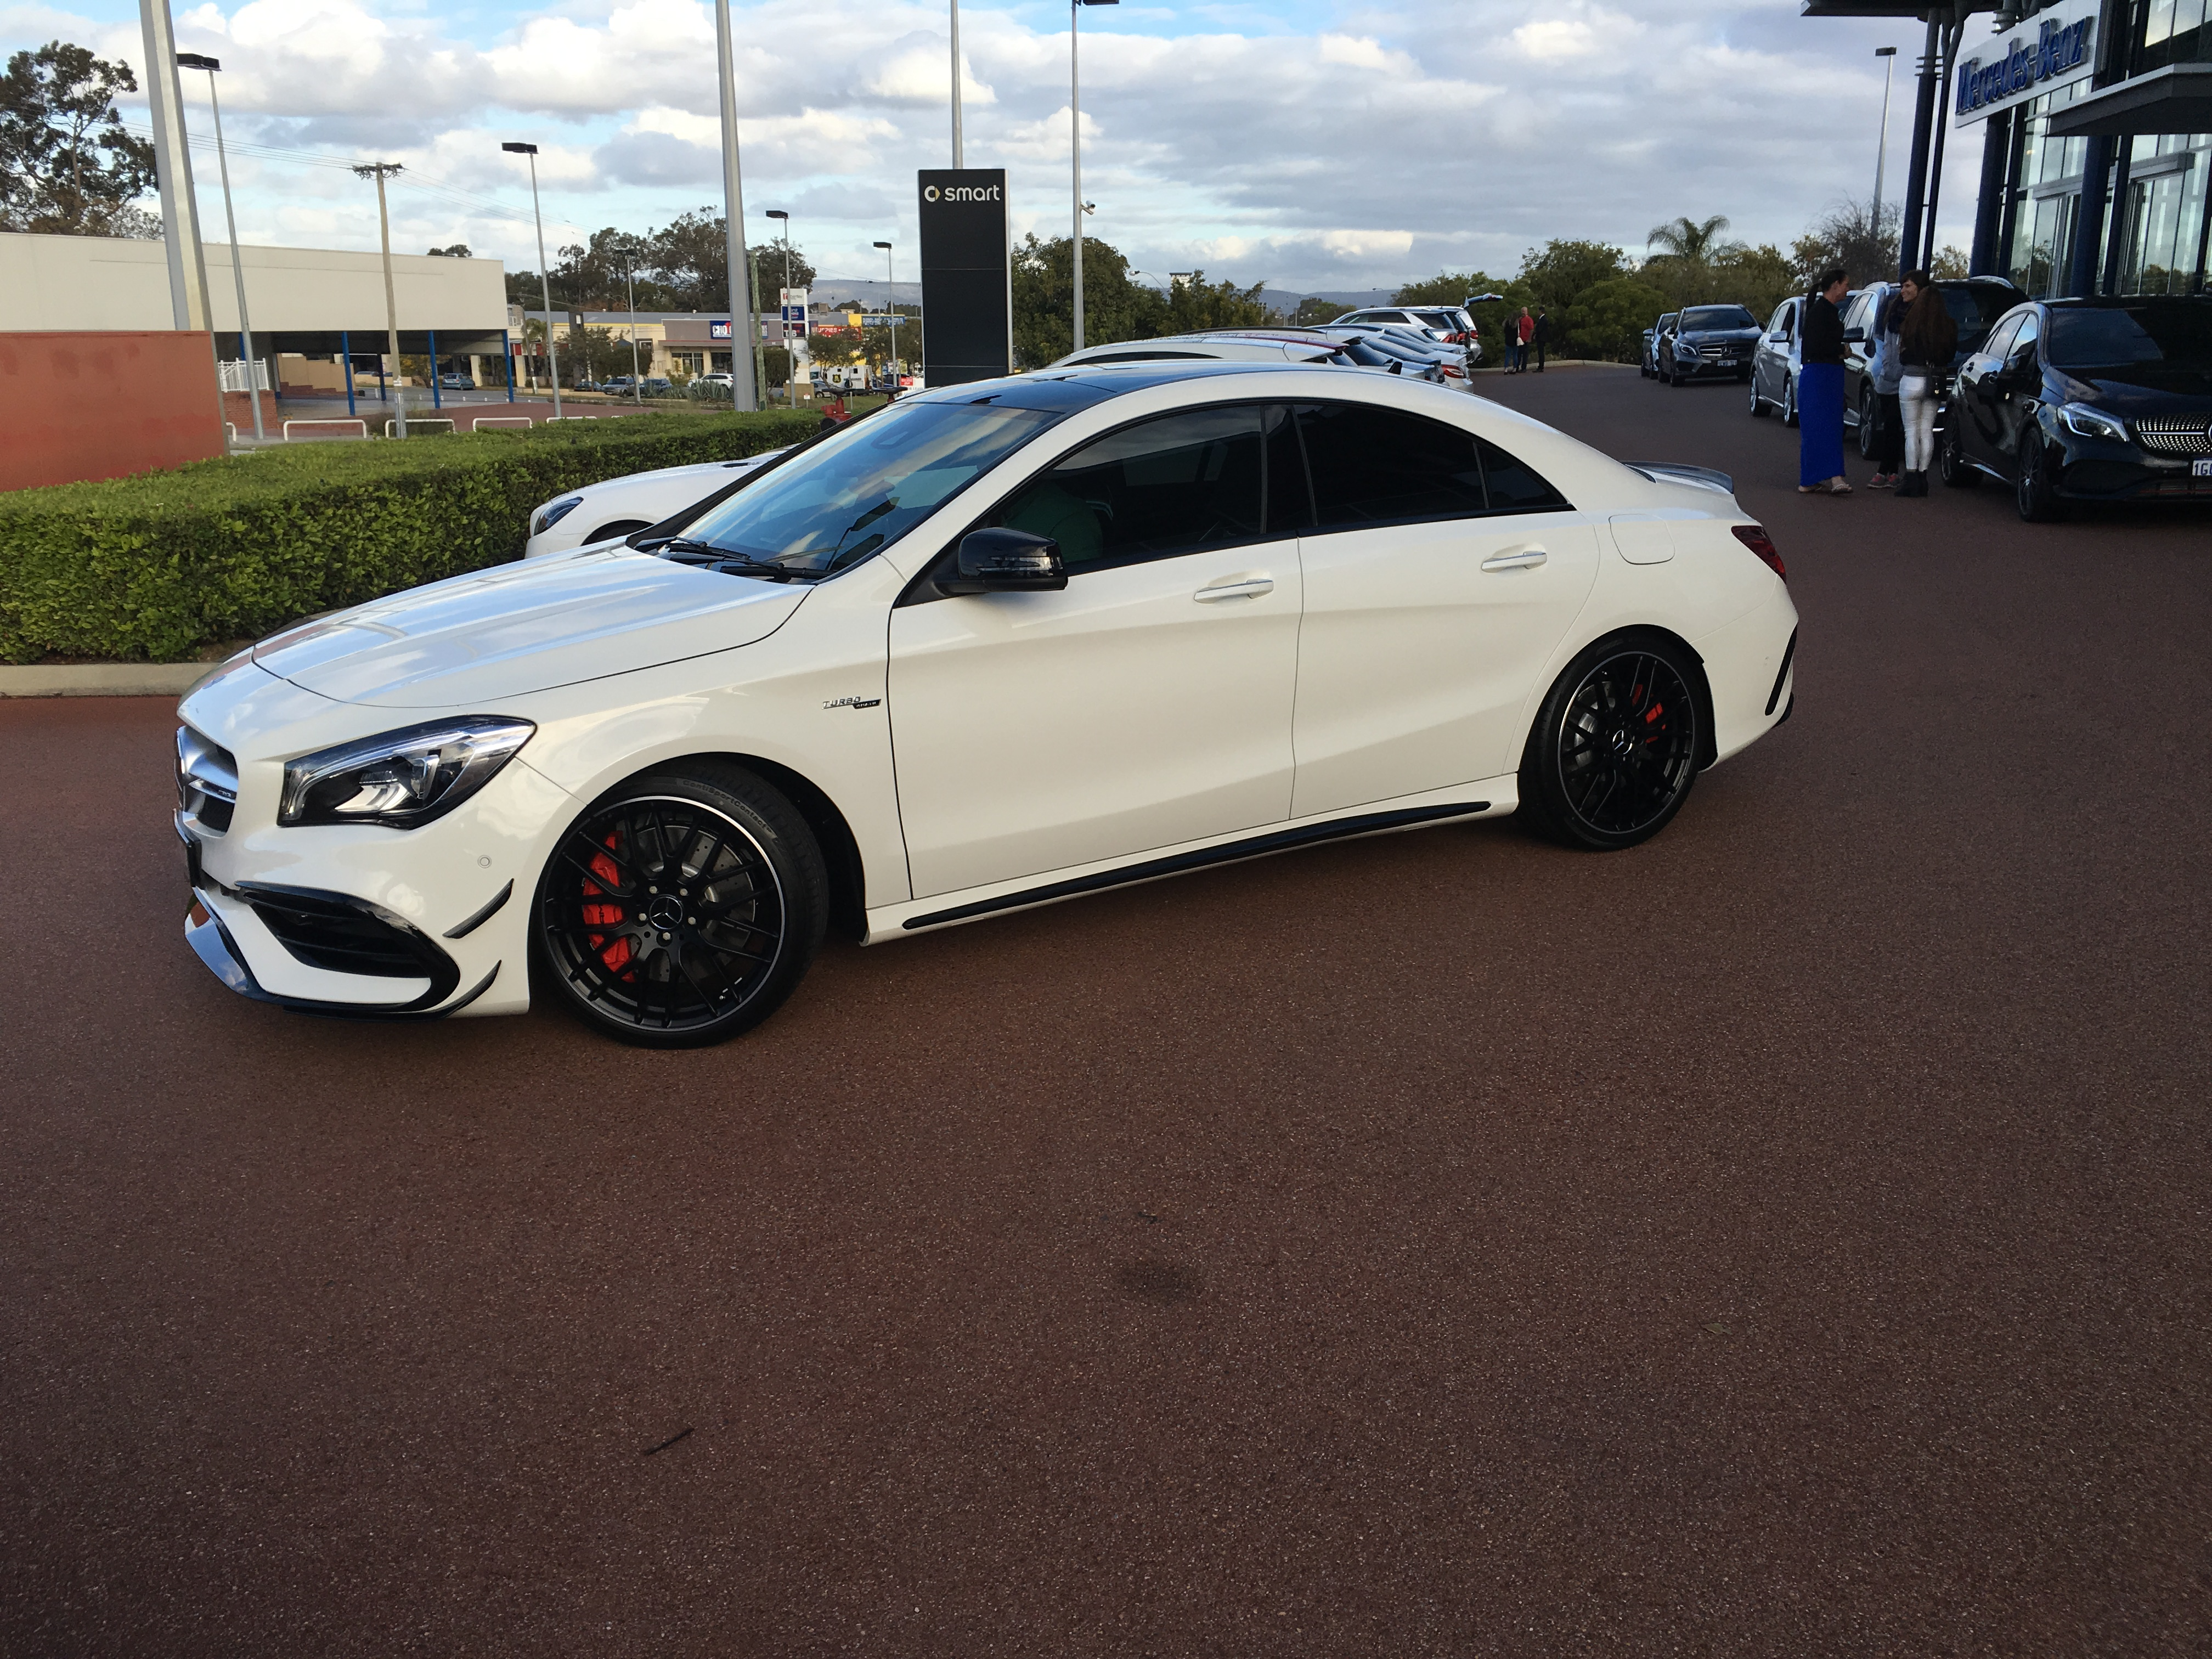 Factory Ordered 2017 Cla45 Amg Page 6 HD Wallpapers Download free images and photos [musssic.tk]